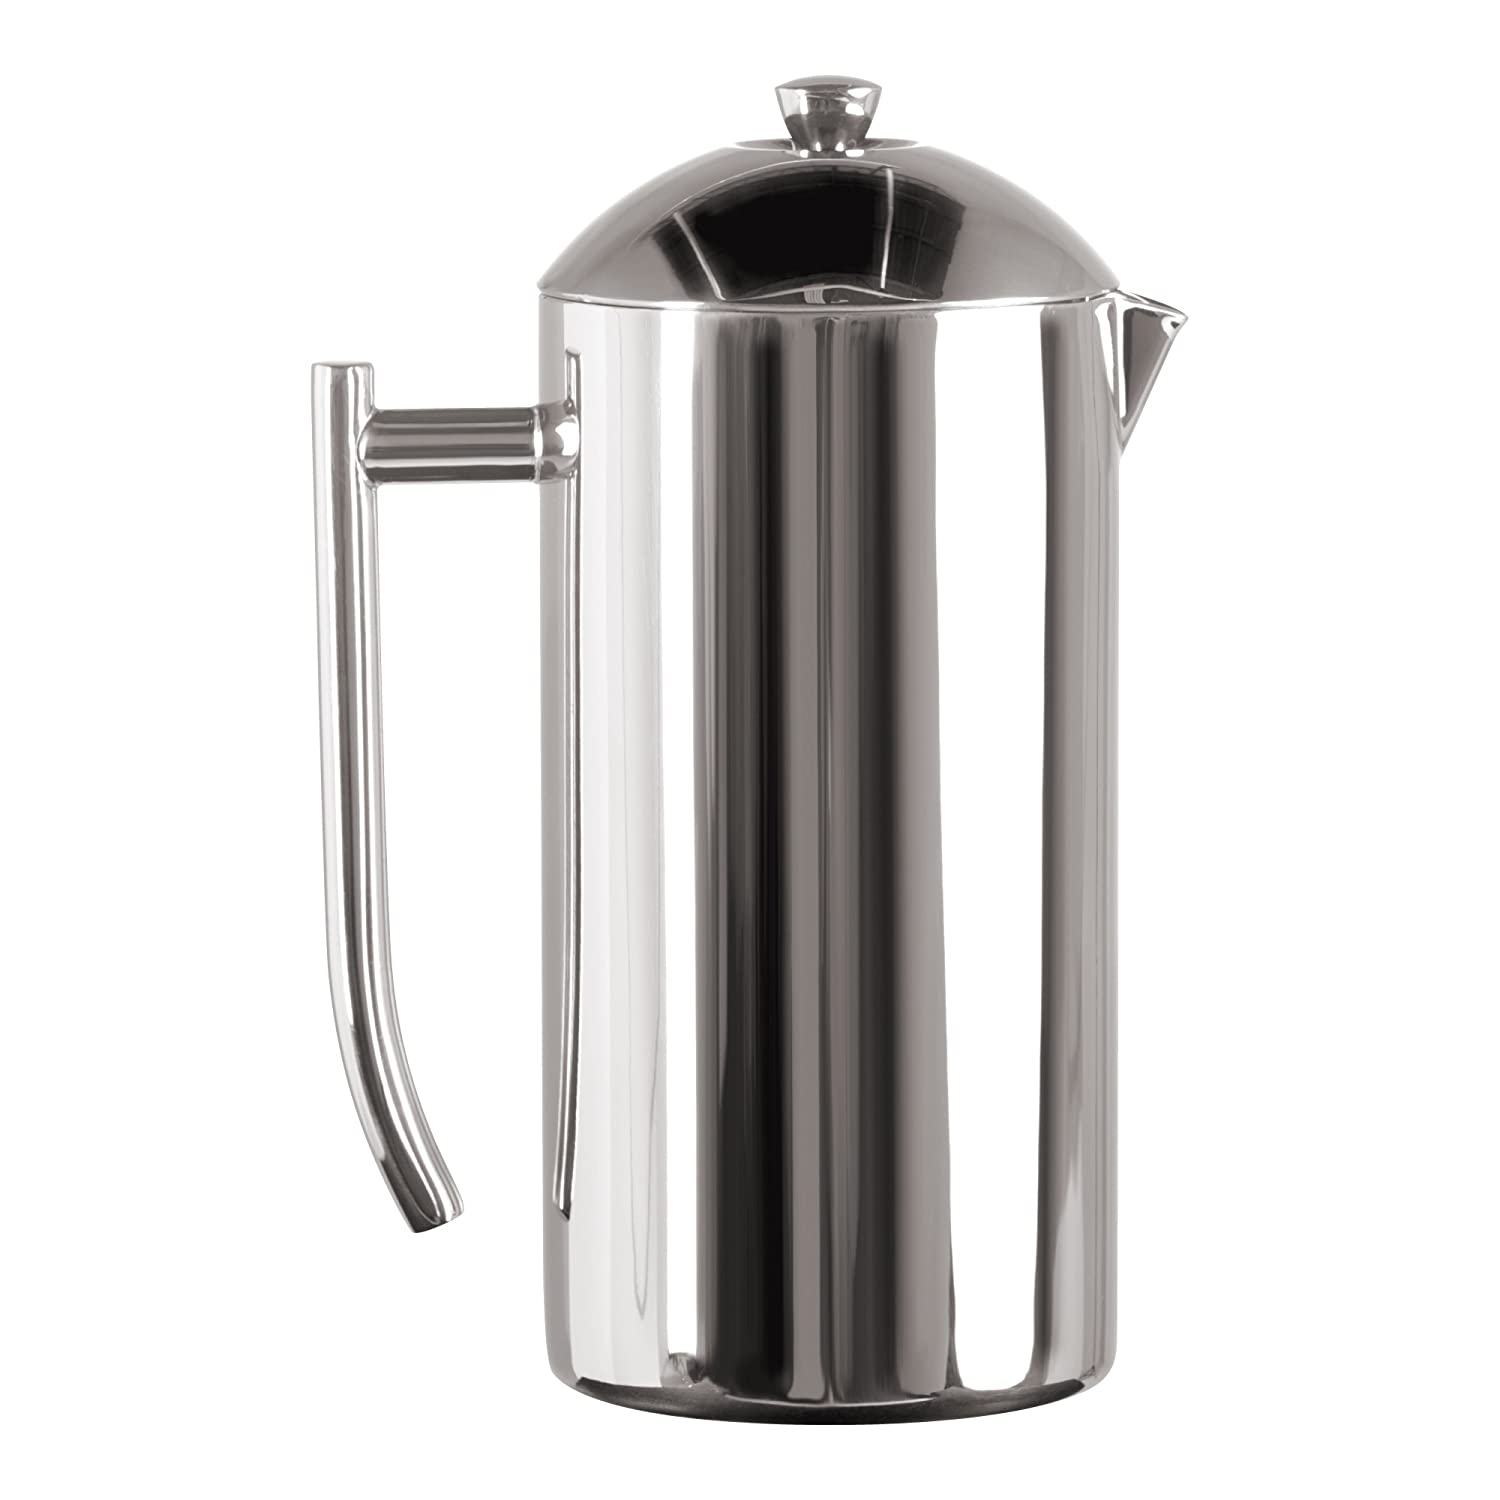 Frieling USA Double Wall Stainless Steel French Press Coffee Maker with Zero Sediment Dual Screen, Polished, 44-Ounce